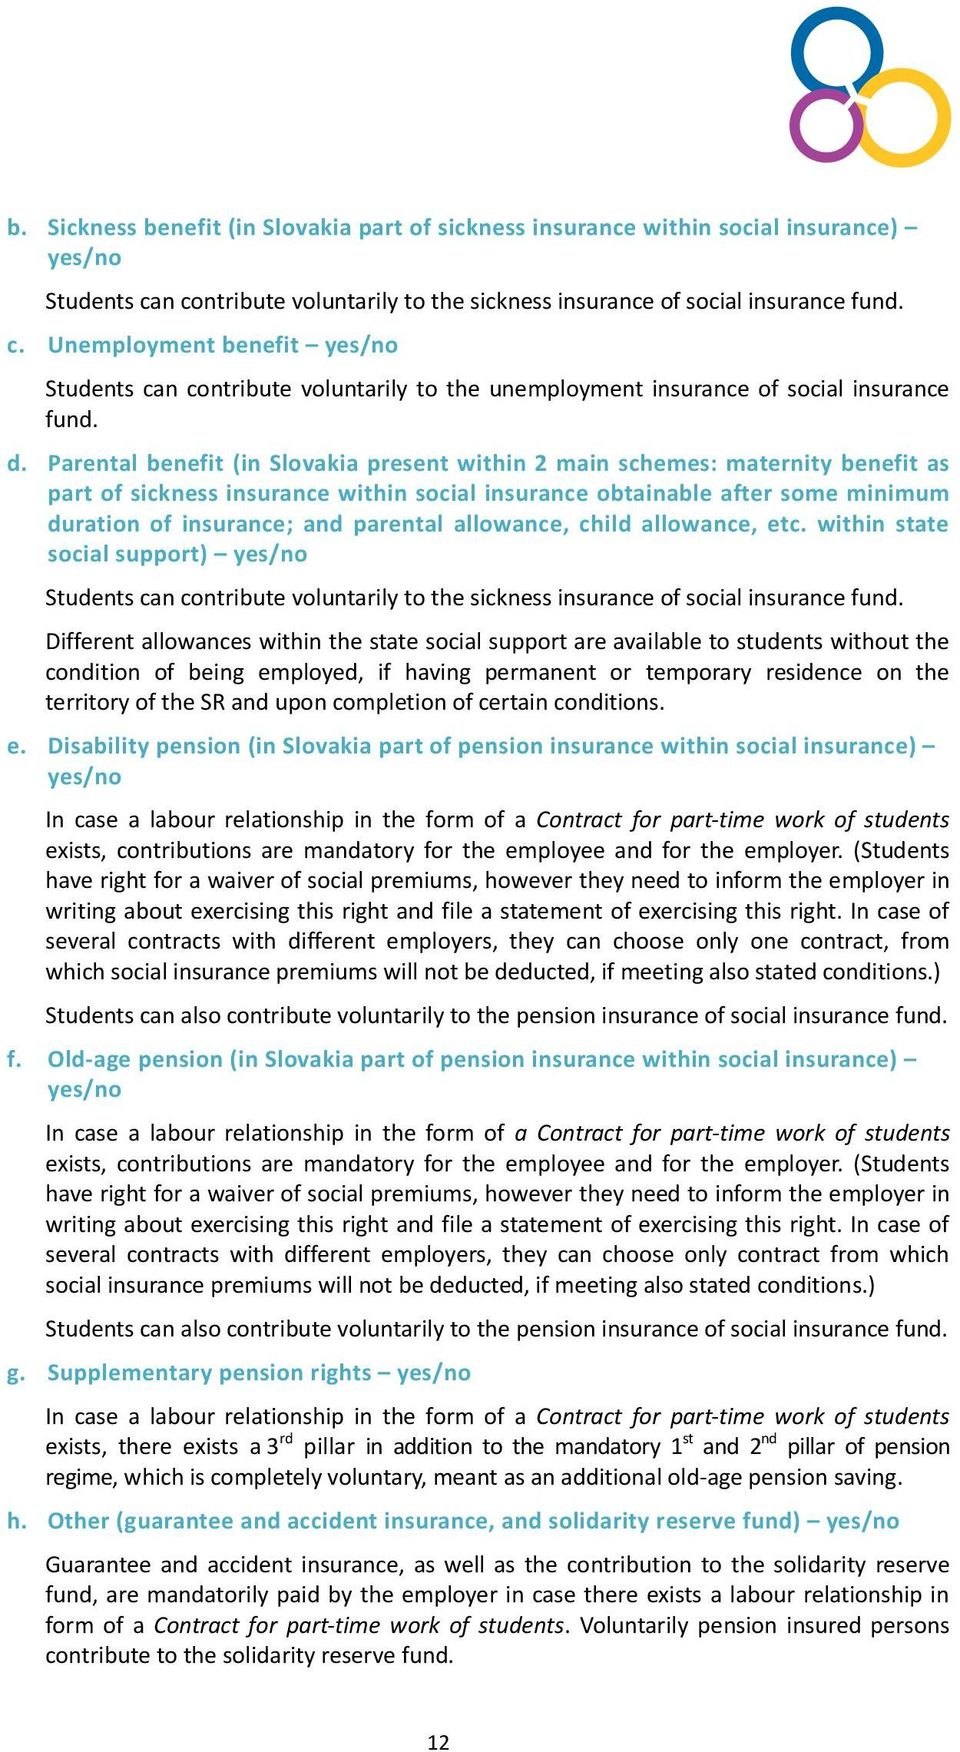 d. Parental benefit (in Slovakia present within 2 main schemes: maternity benefit as part of sickness insurance within social insurance obtainable after some minimum duration of insurance; and